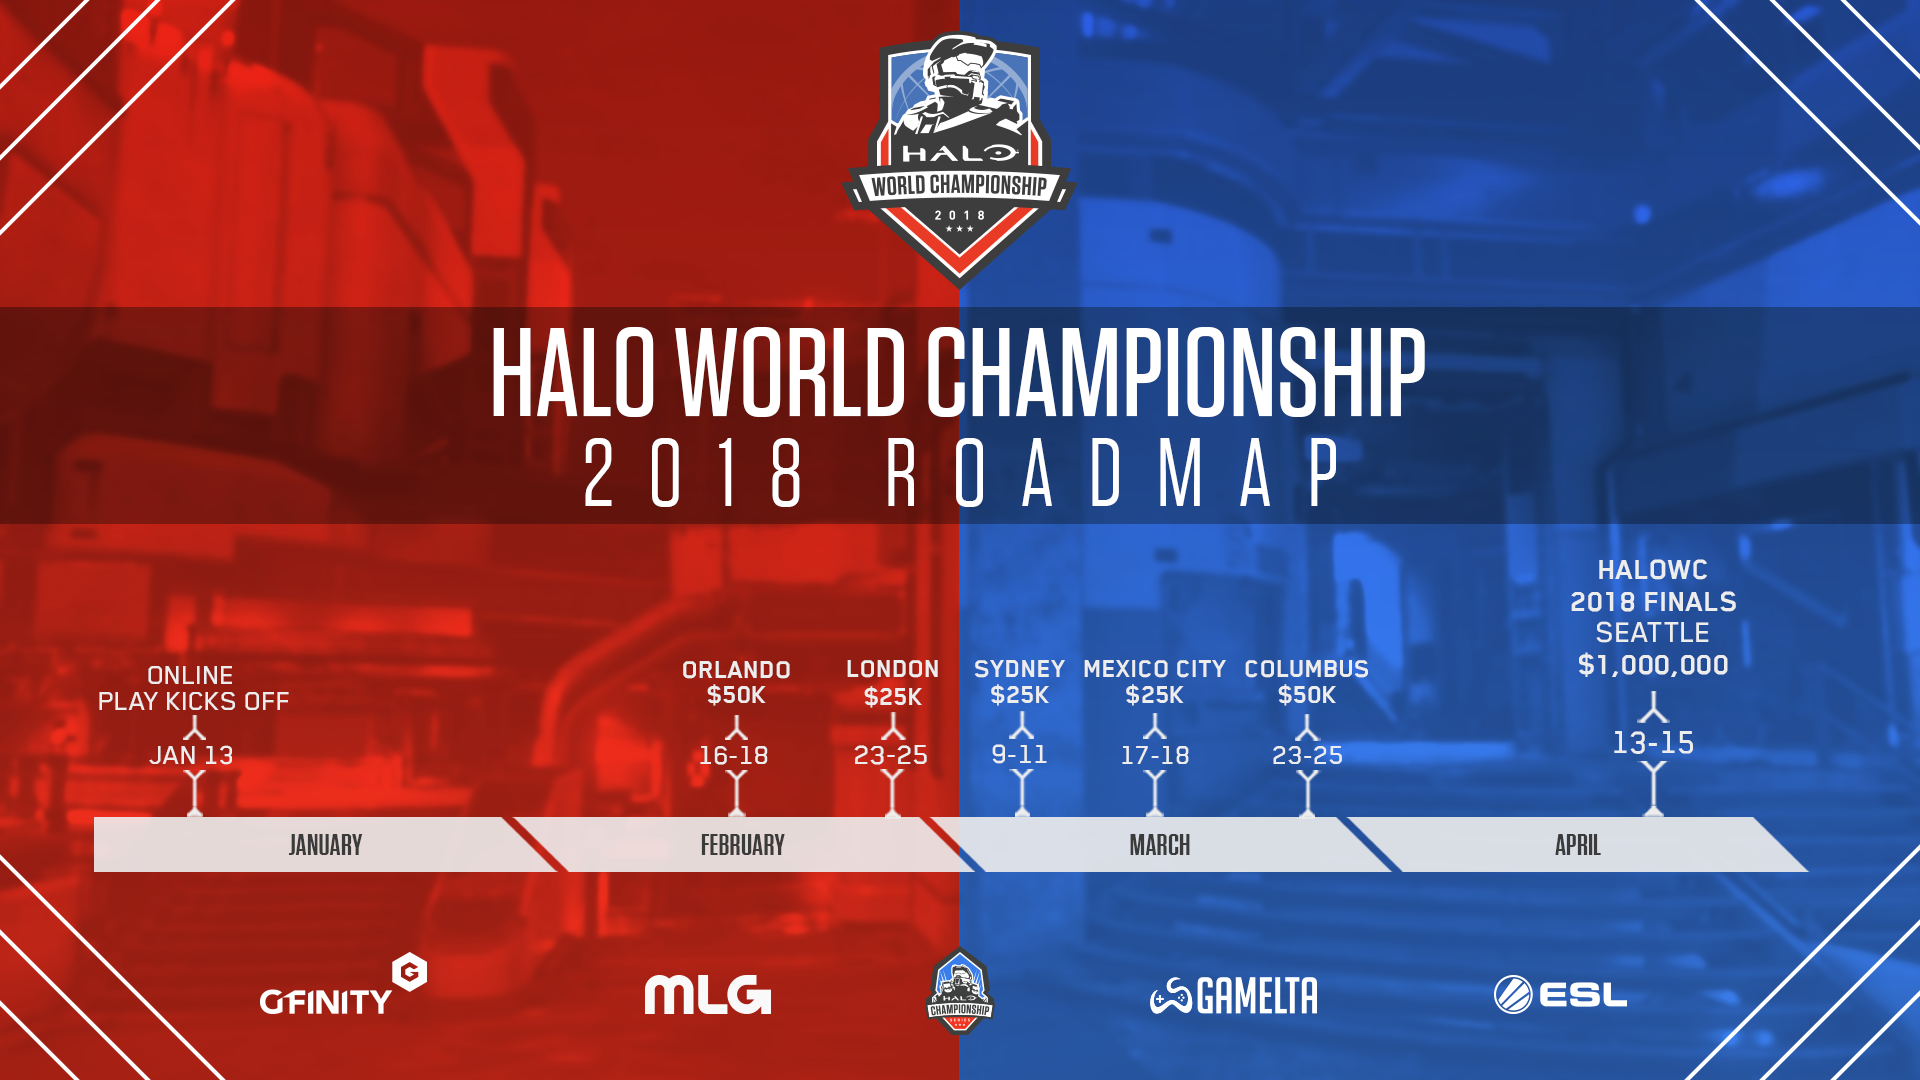 Halo World Championship 2018 Road Map